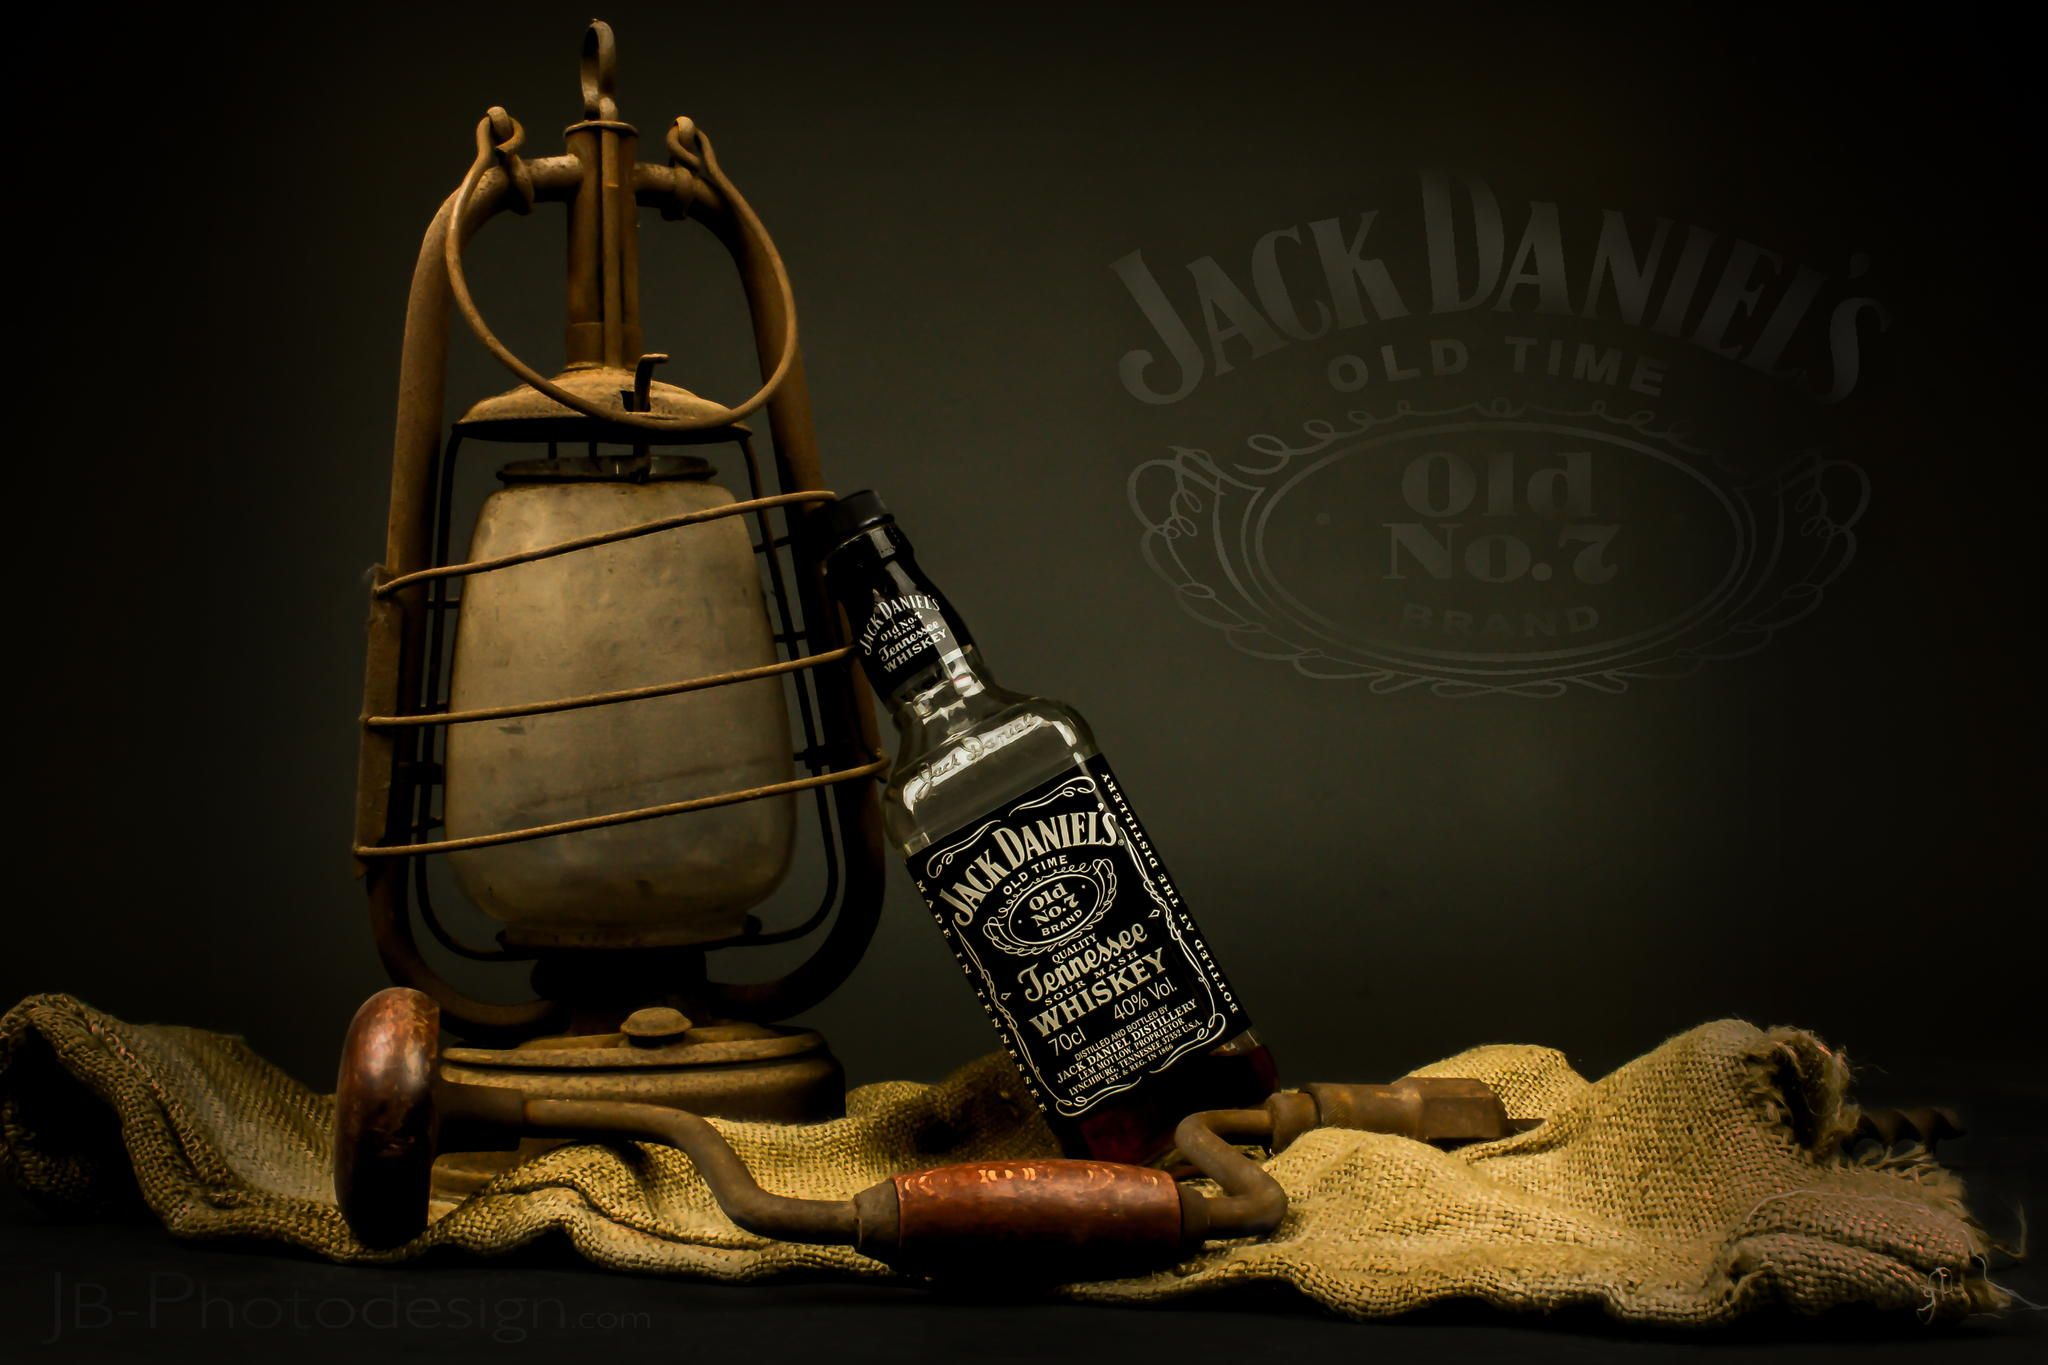 Jack for worker by Jan Bachmann on 500px